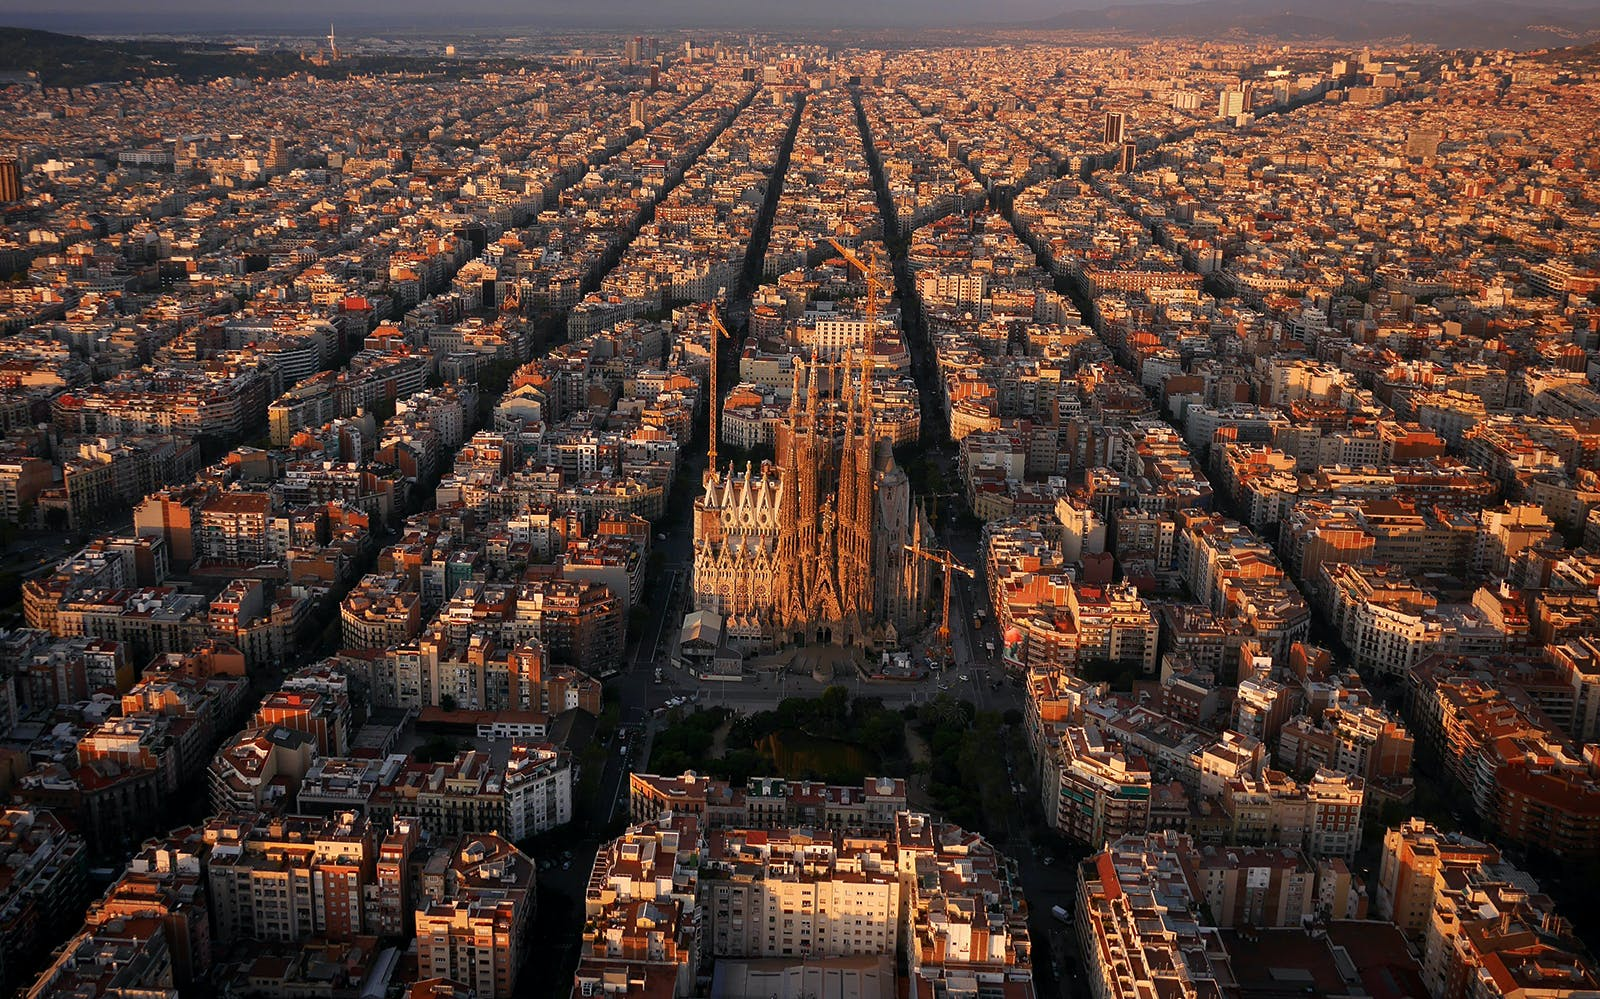 best of barcelona tour including skip the line entry to sagrada familia-1